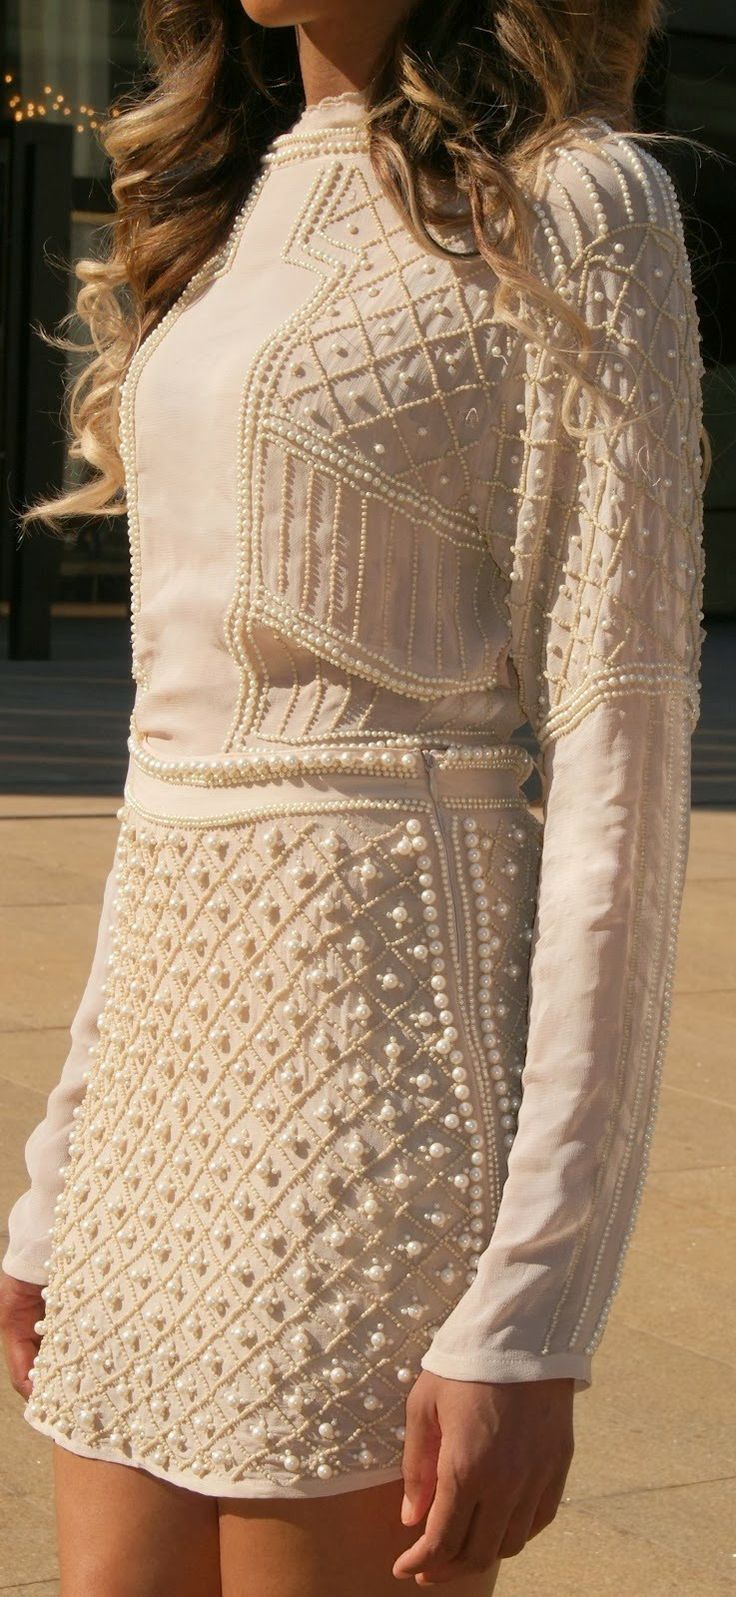 Gorgeous Embellished Ivory rehearsal dinner or bachelorette party dress for a fall or winter wedding